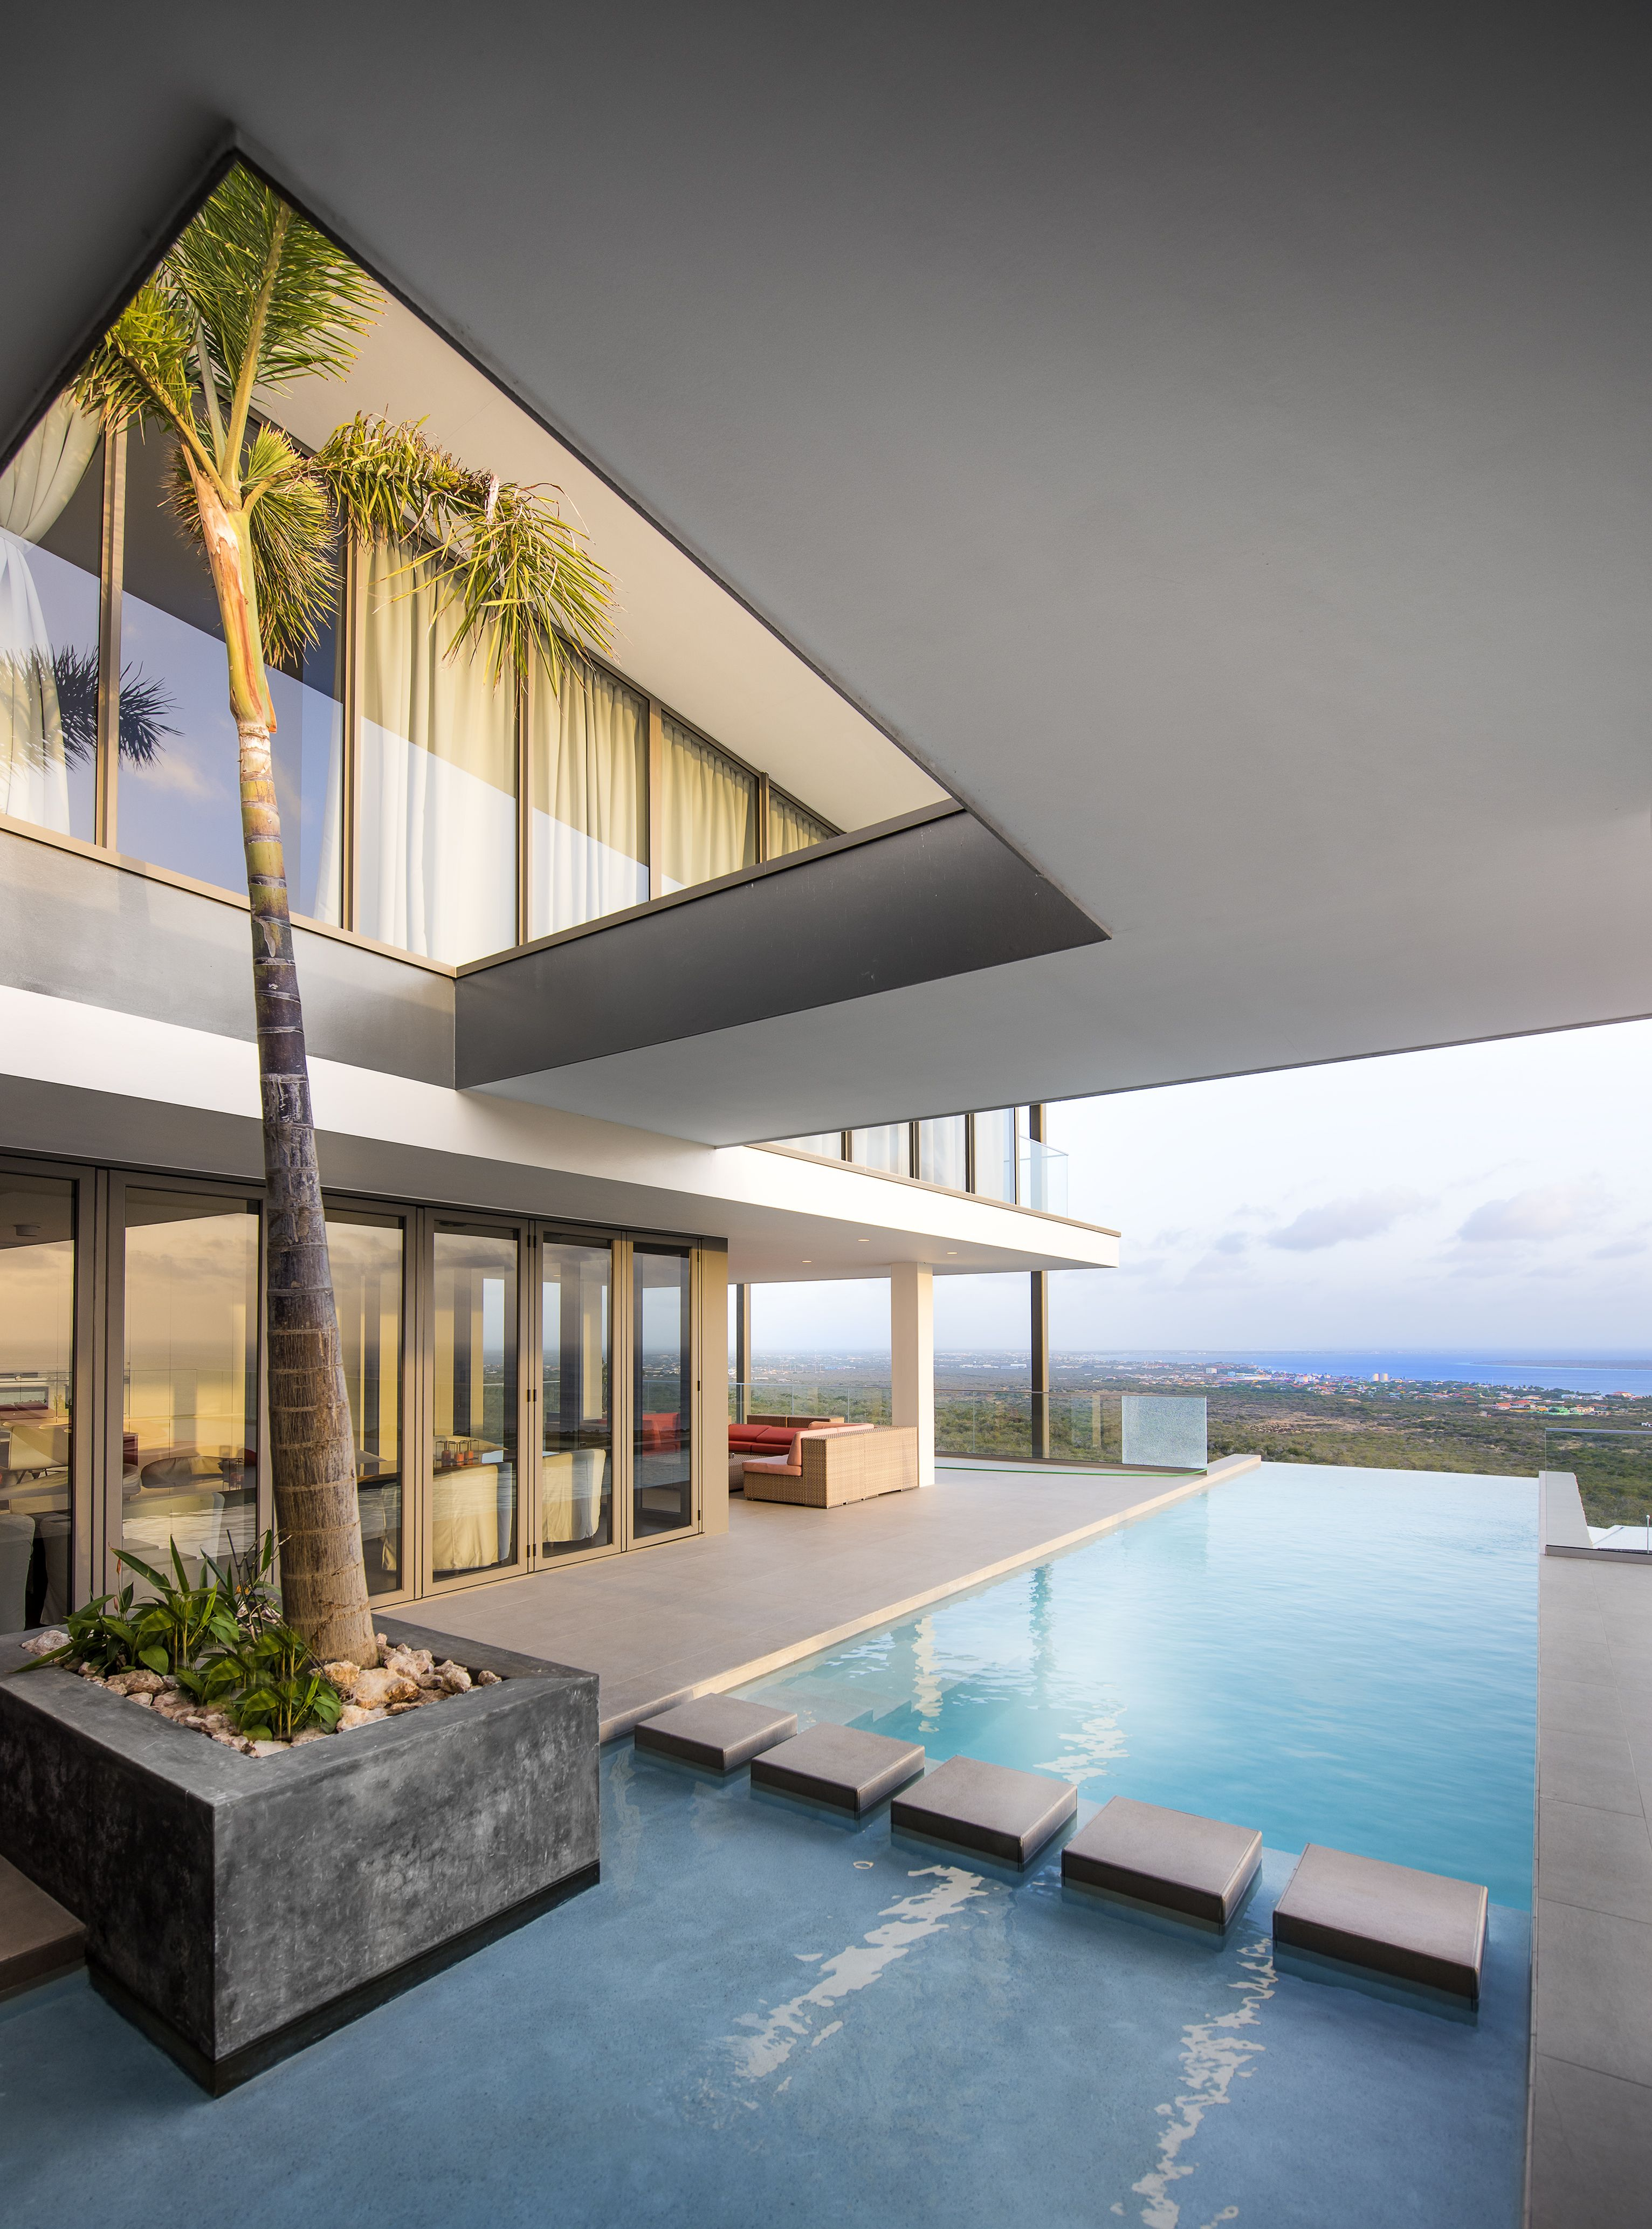 The Magnificent Incredible Private Tropical Garden With Infinity Pool For The Most Beautiful View Luxury House Luxury Homes Interior Tropical Garden